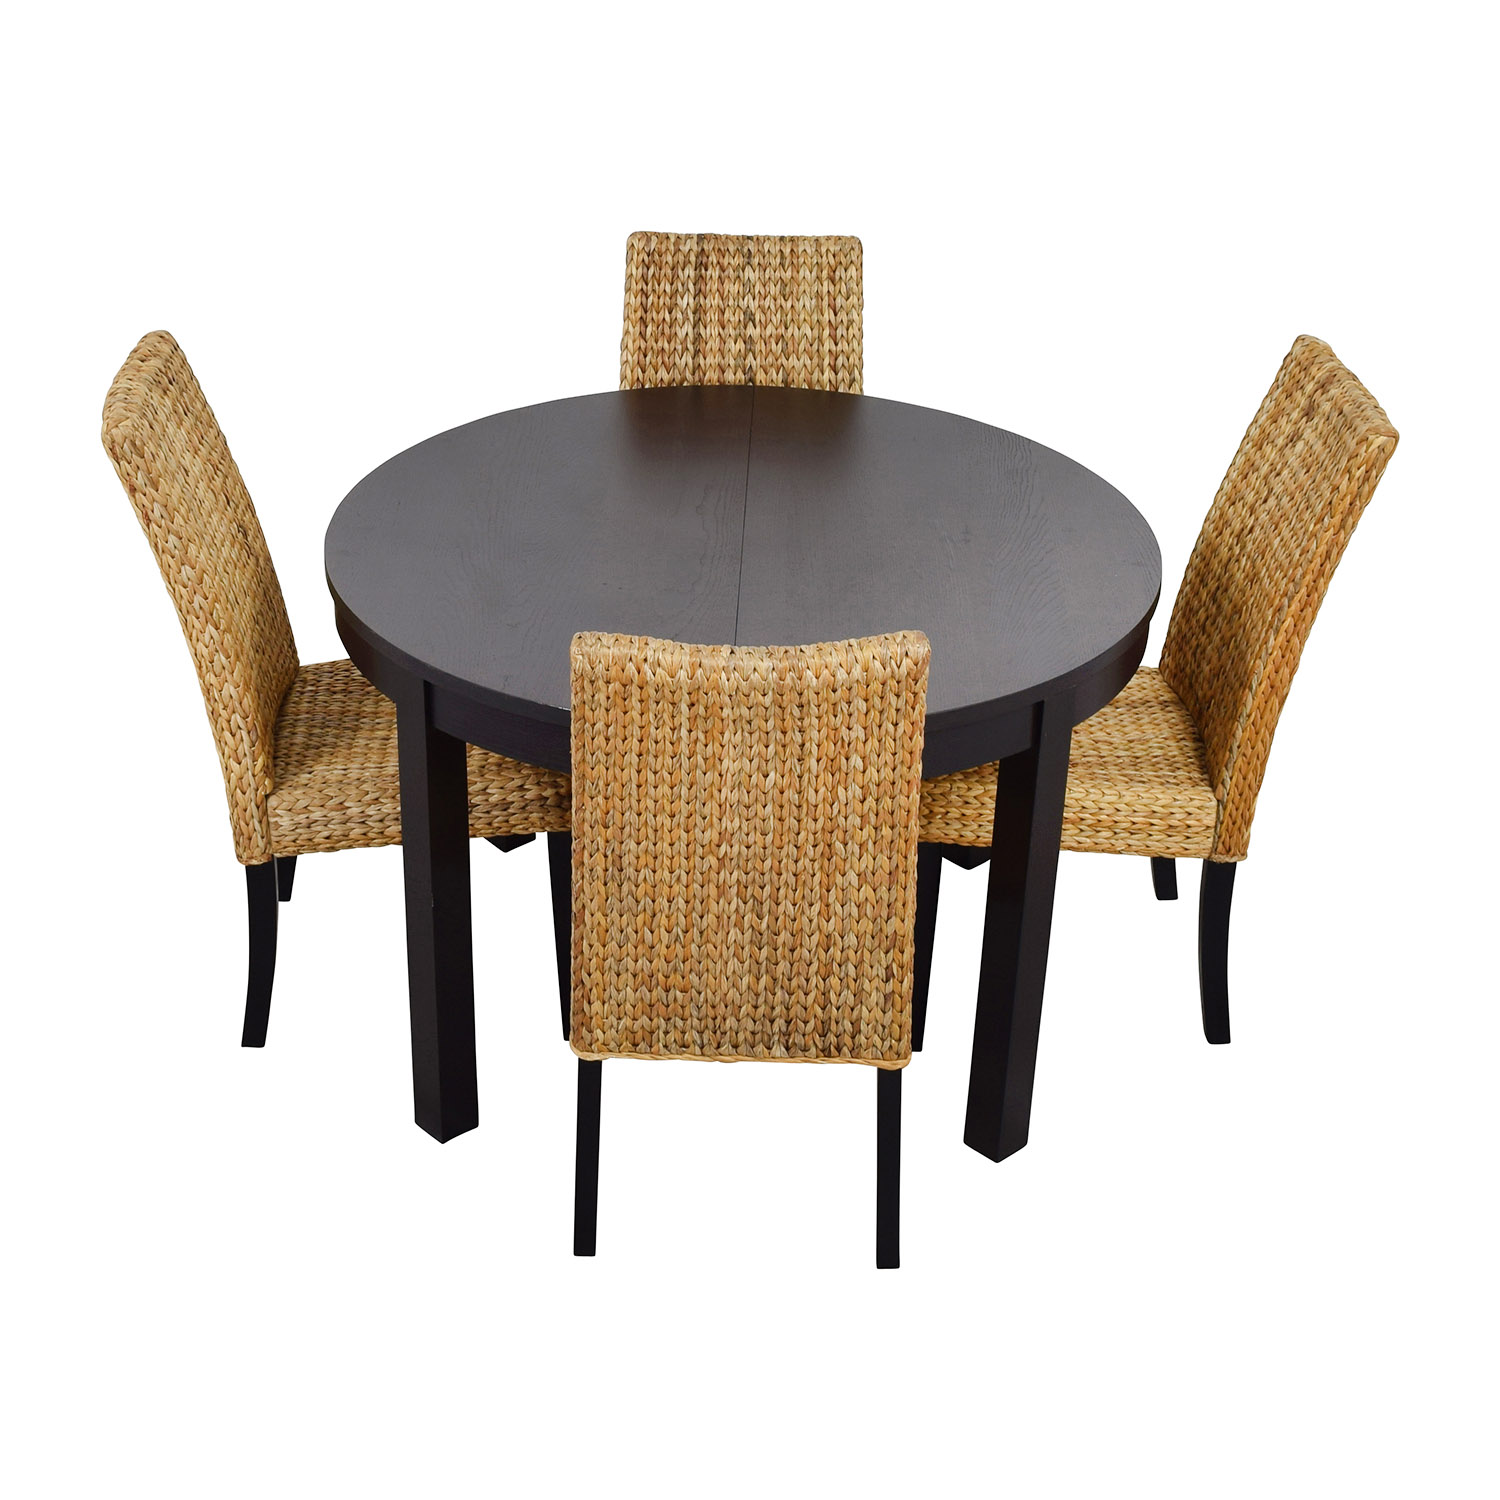 ... Macyu0027s U0026 IKEA Round Black Dining Table Set With Four Chairs ...